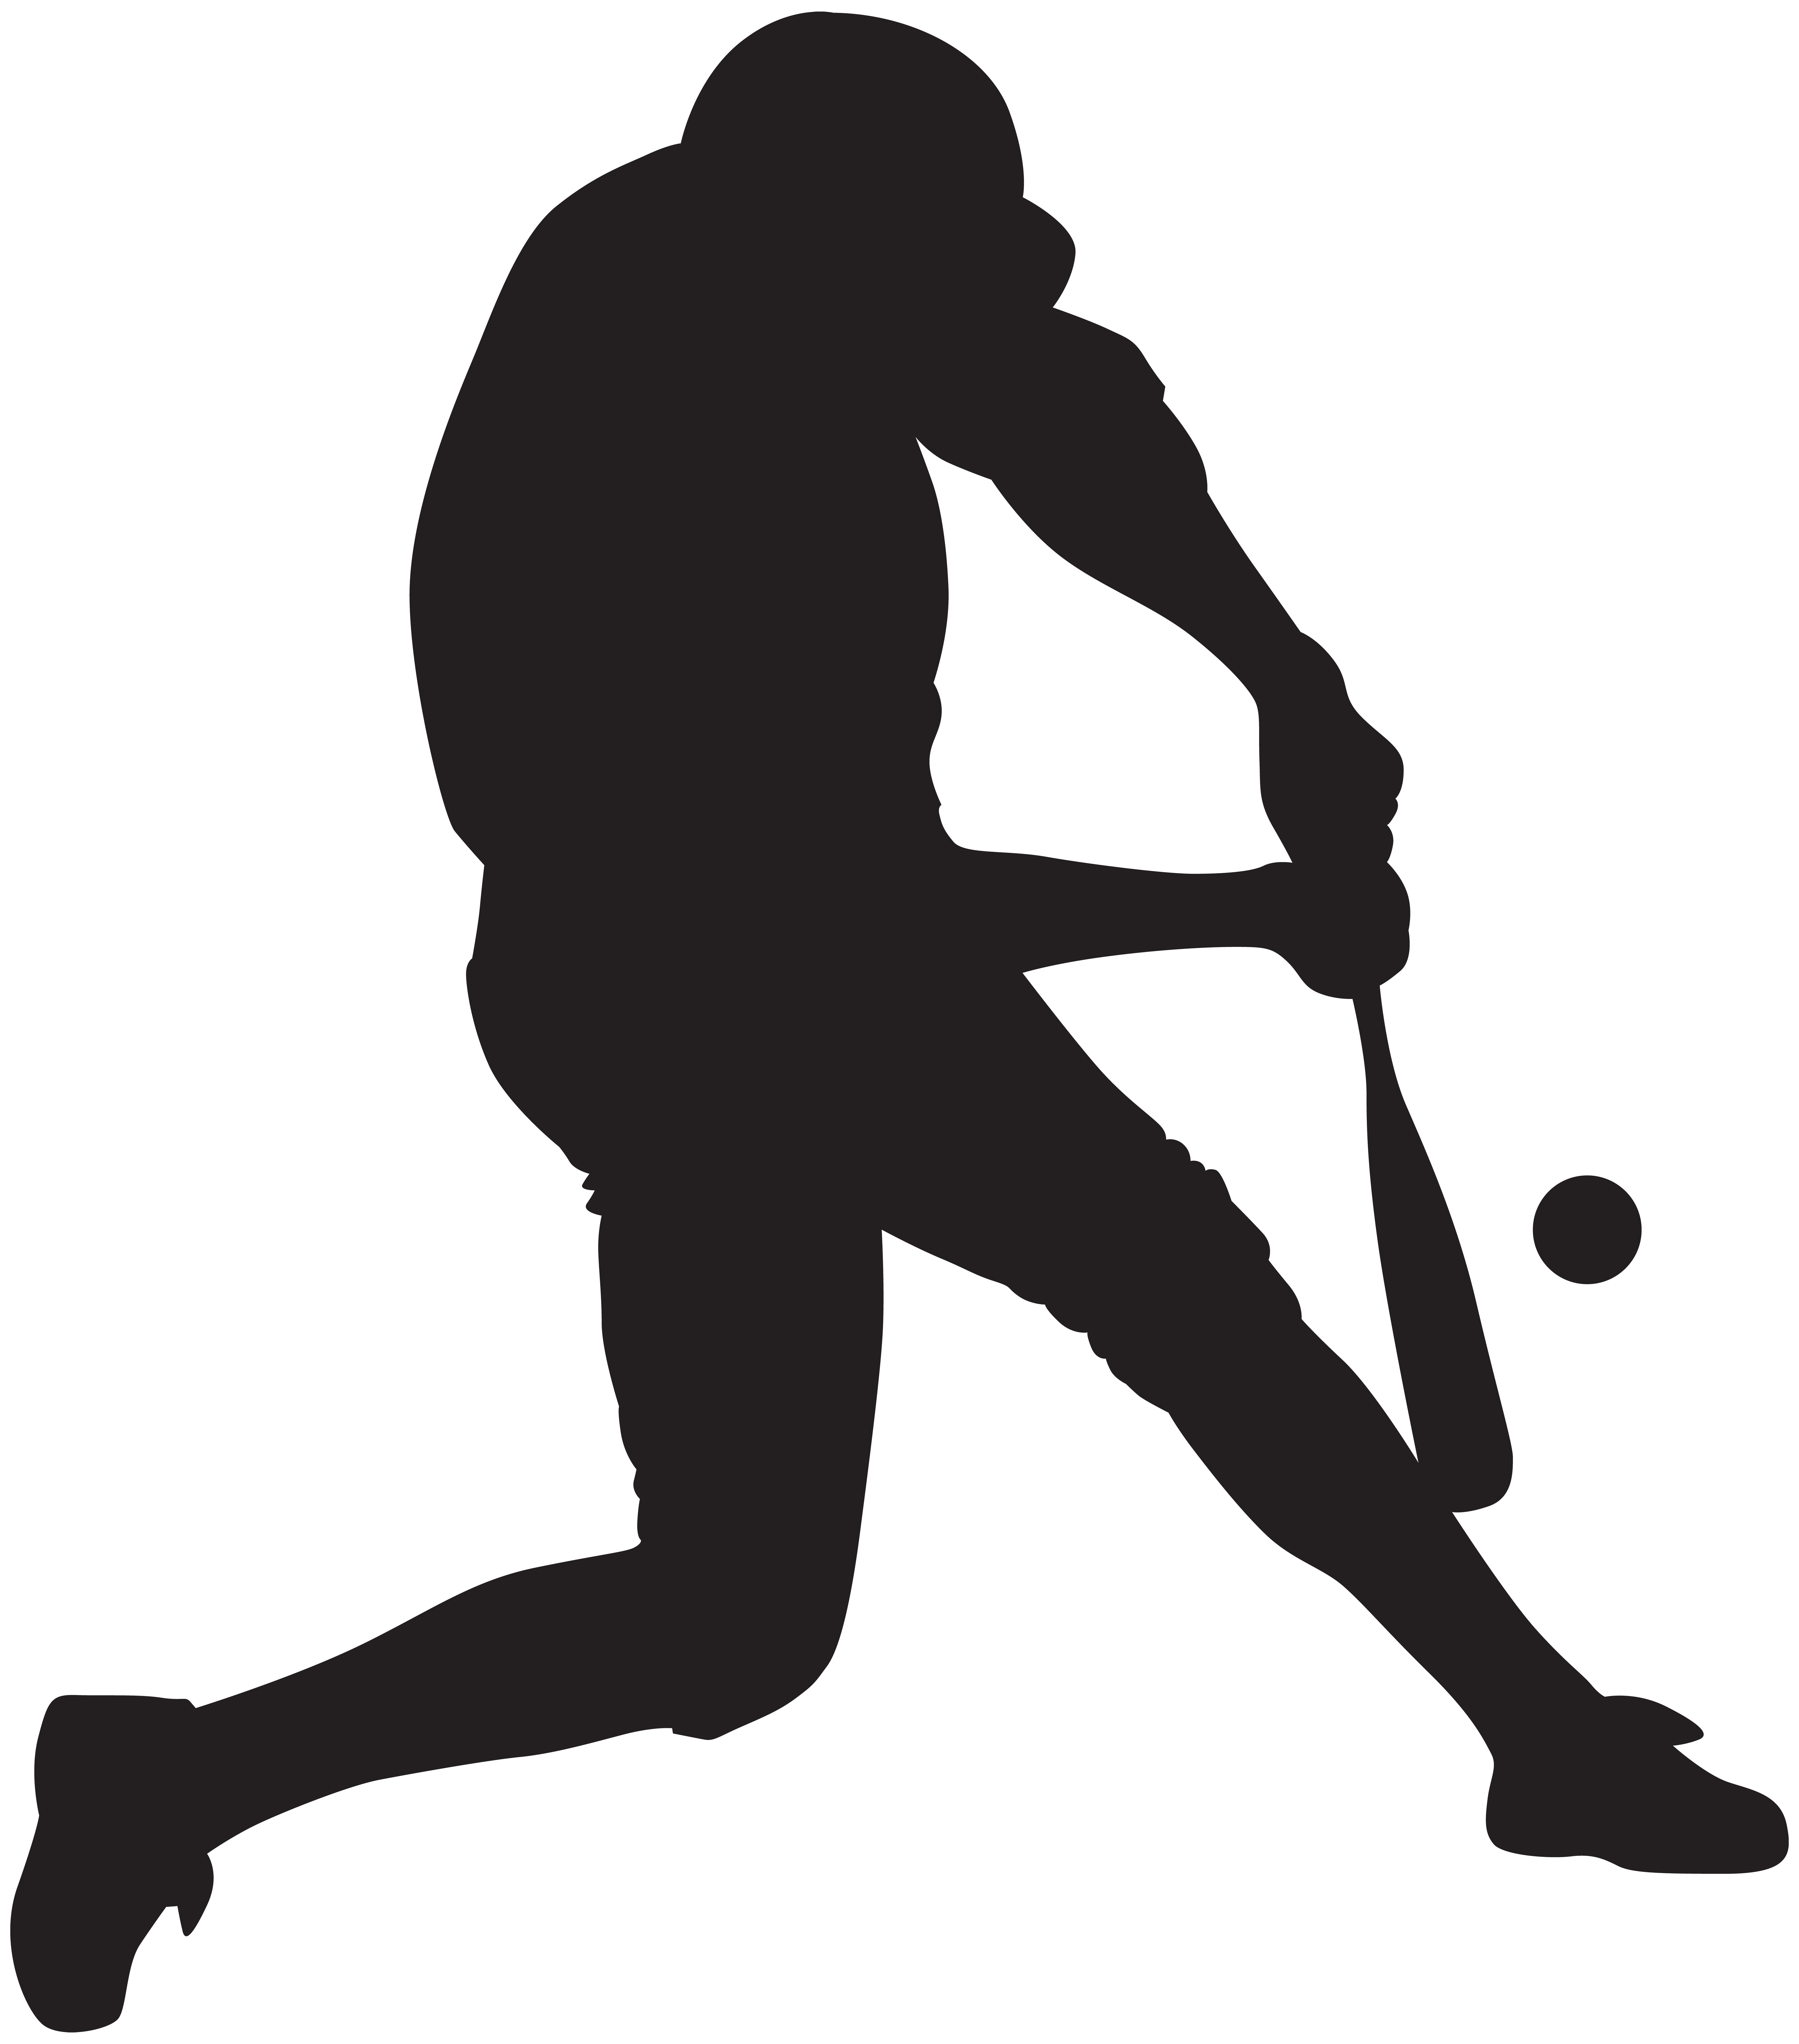 clip freeuse download Silhouette png art image. Baseball clip player